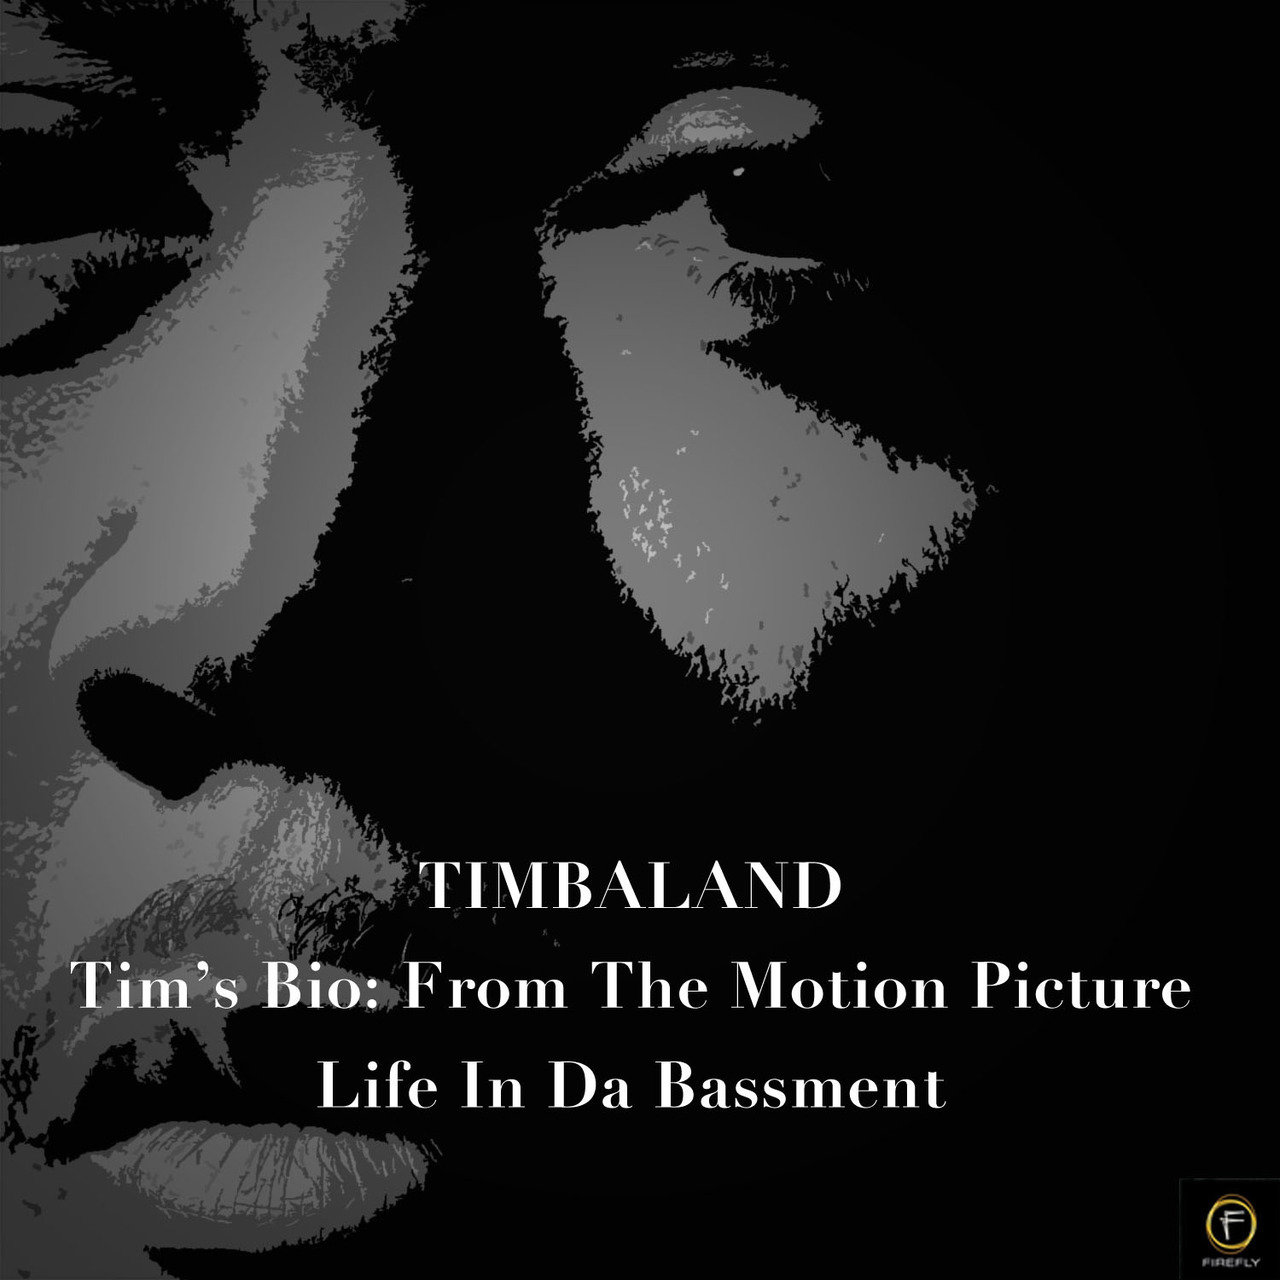 Tim's Bio: From The Motion Picture-Life From Da Bassment